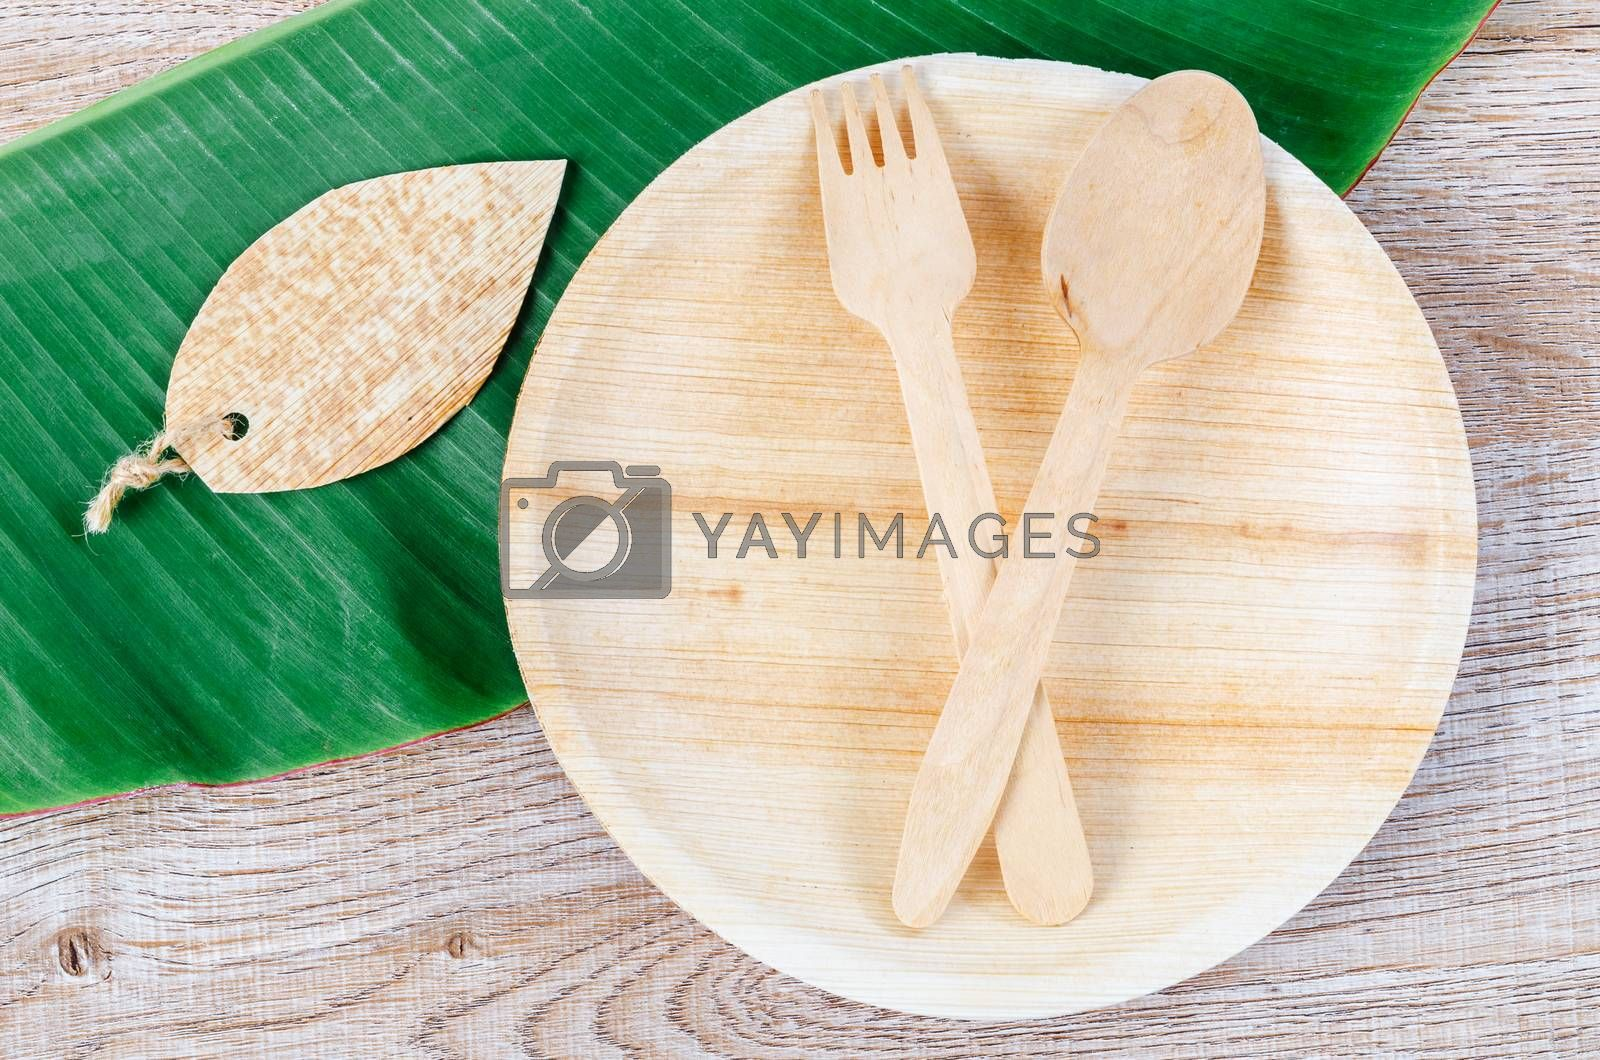 Kitchenware made from dried betel nut leaf palm, natural material. The Green product eco friendly concept.